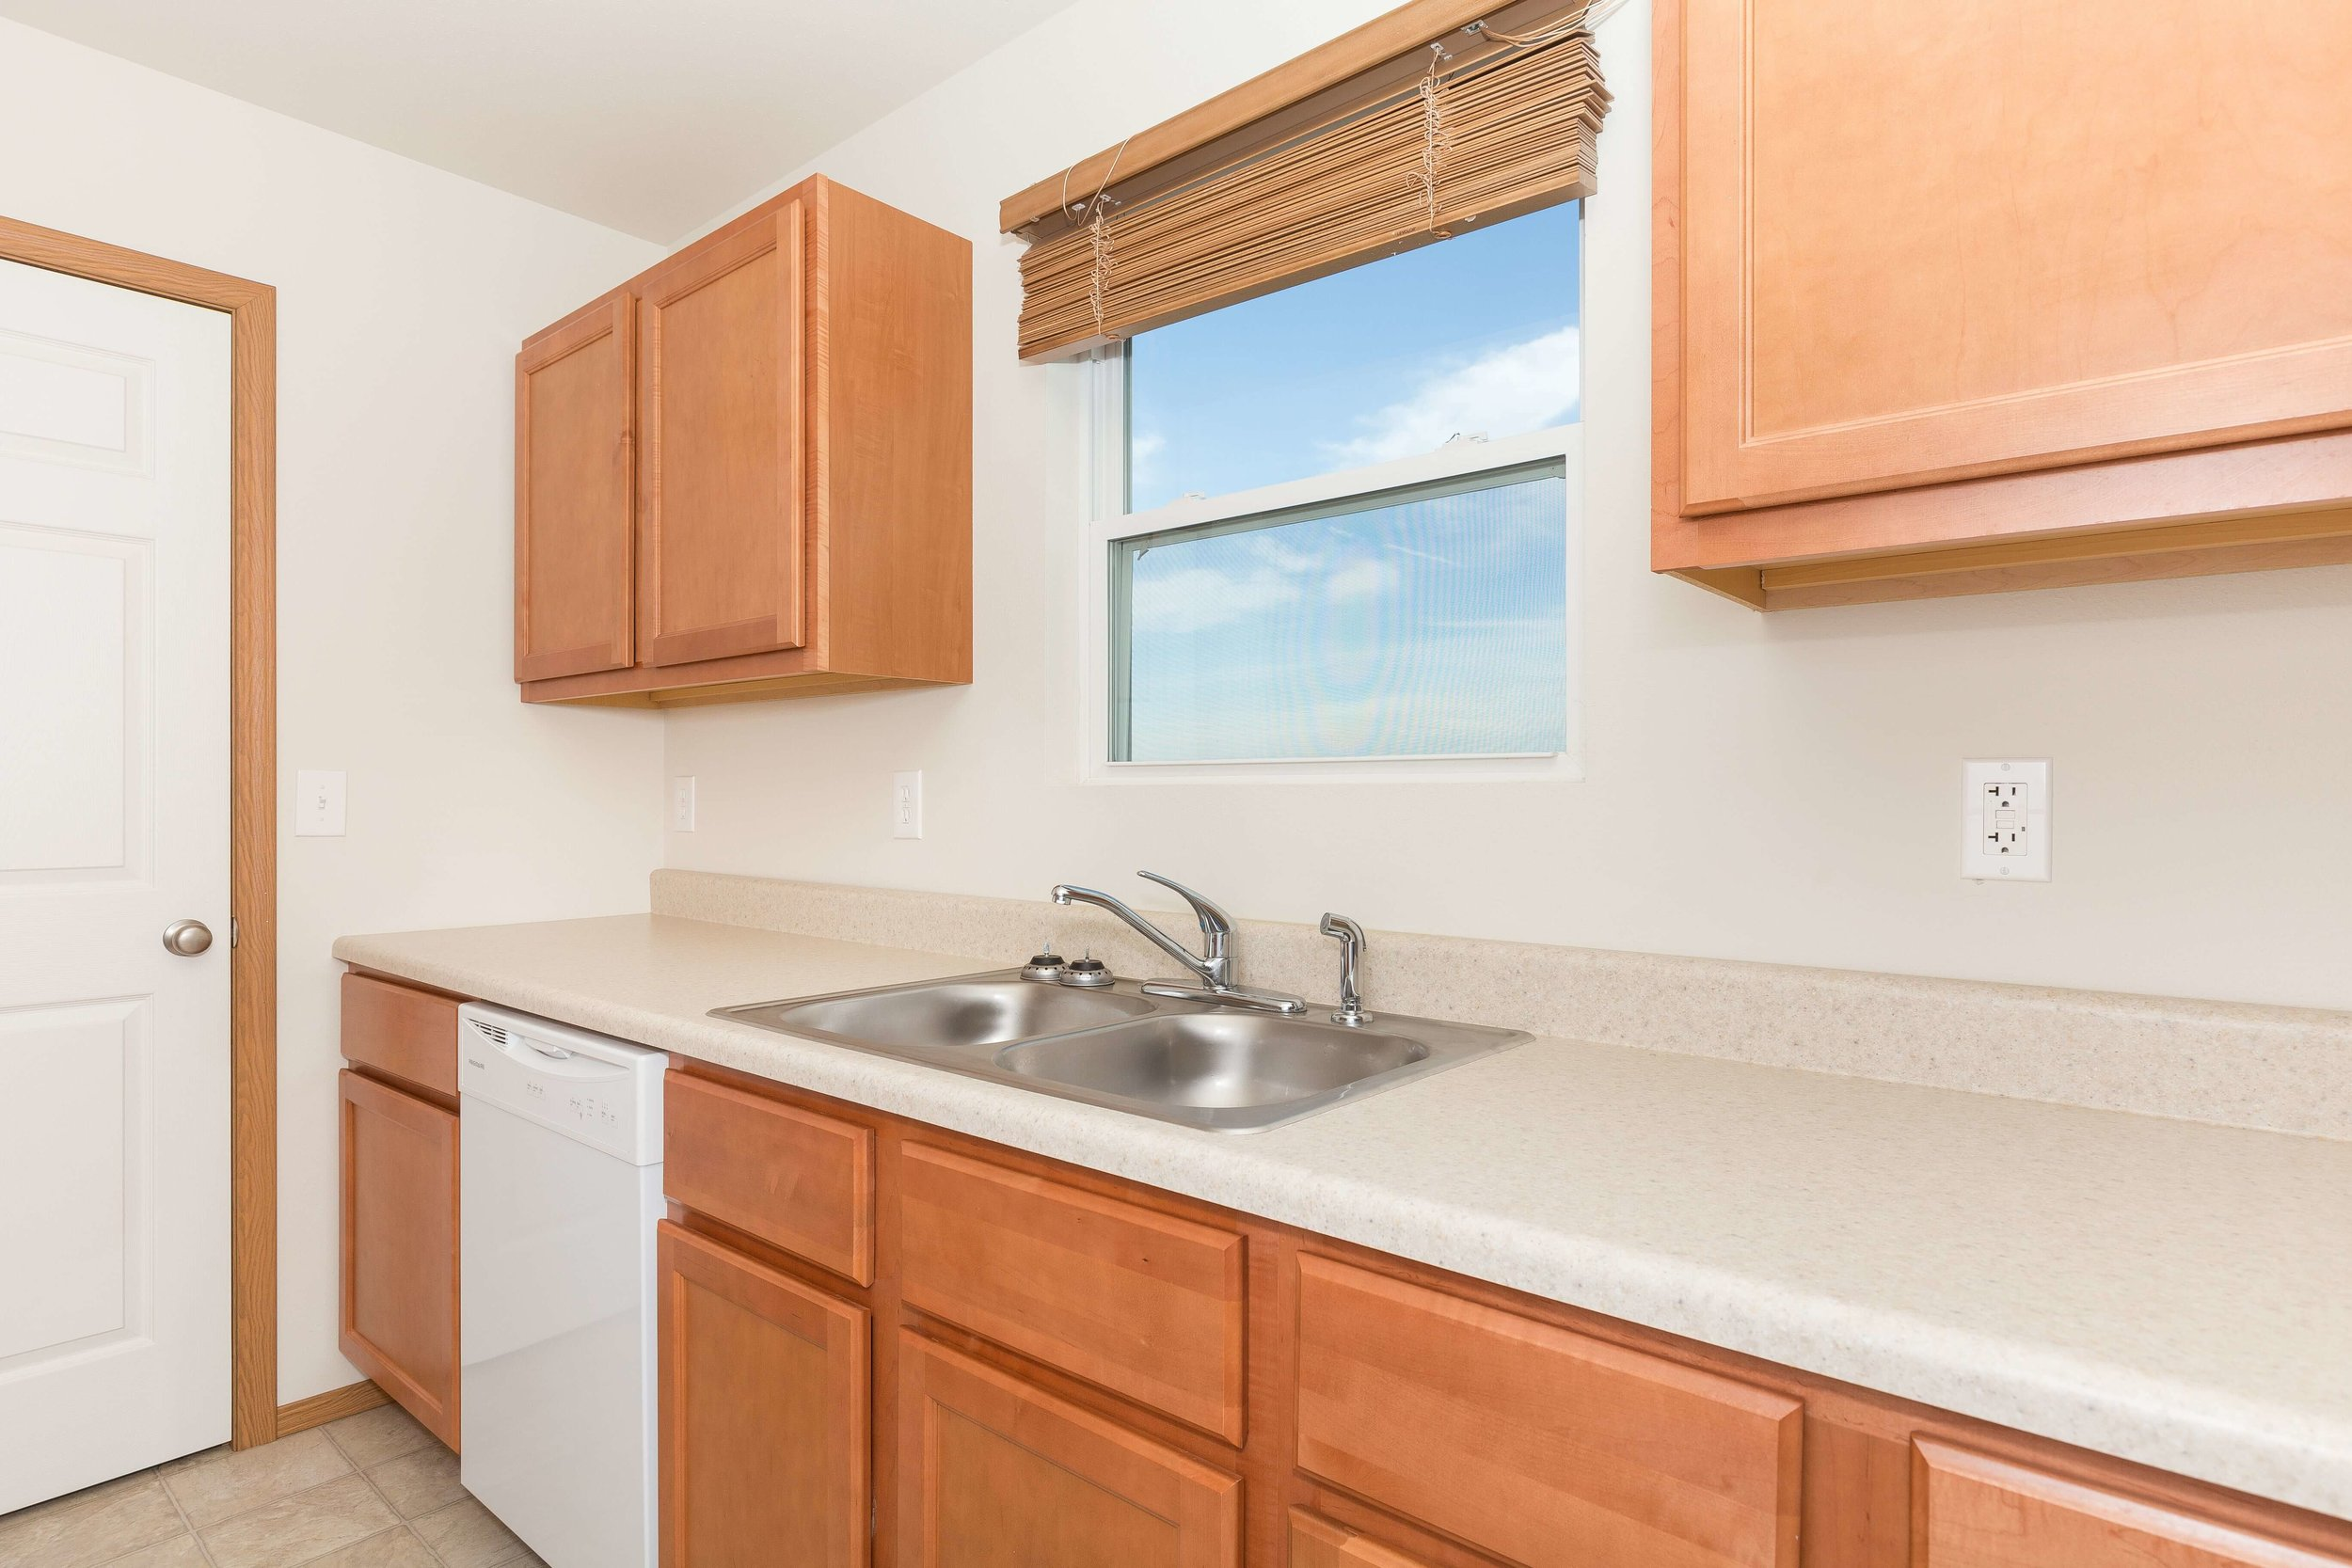 Mascoutah apartments for rent